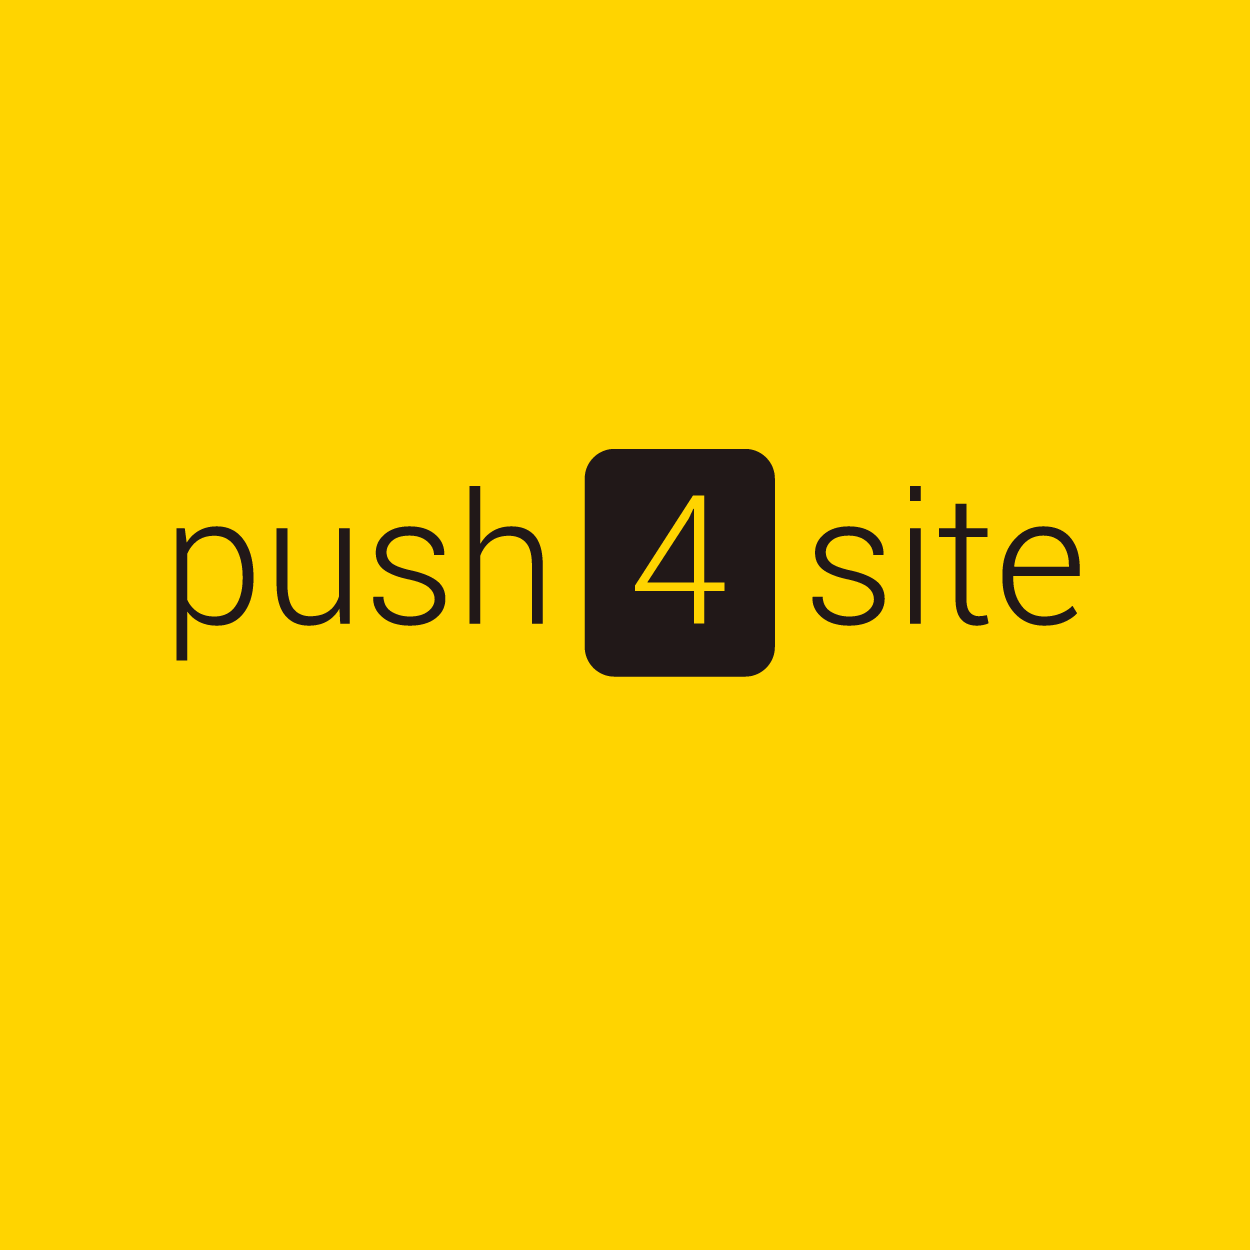 Рush4site - pricing, customer reviews, features, free plans, alternatives, comparisons, service costs.